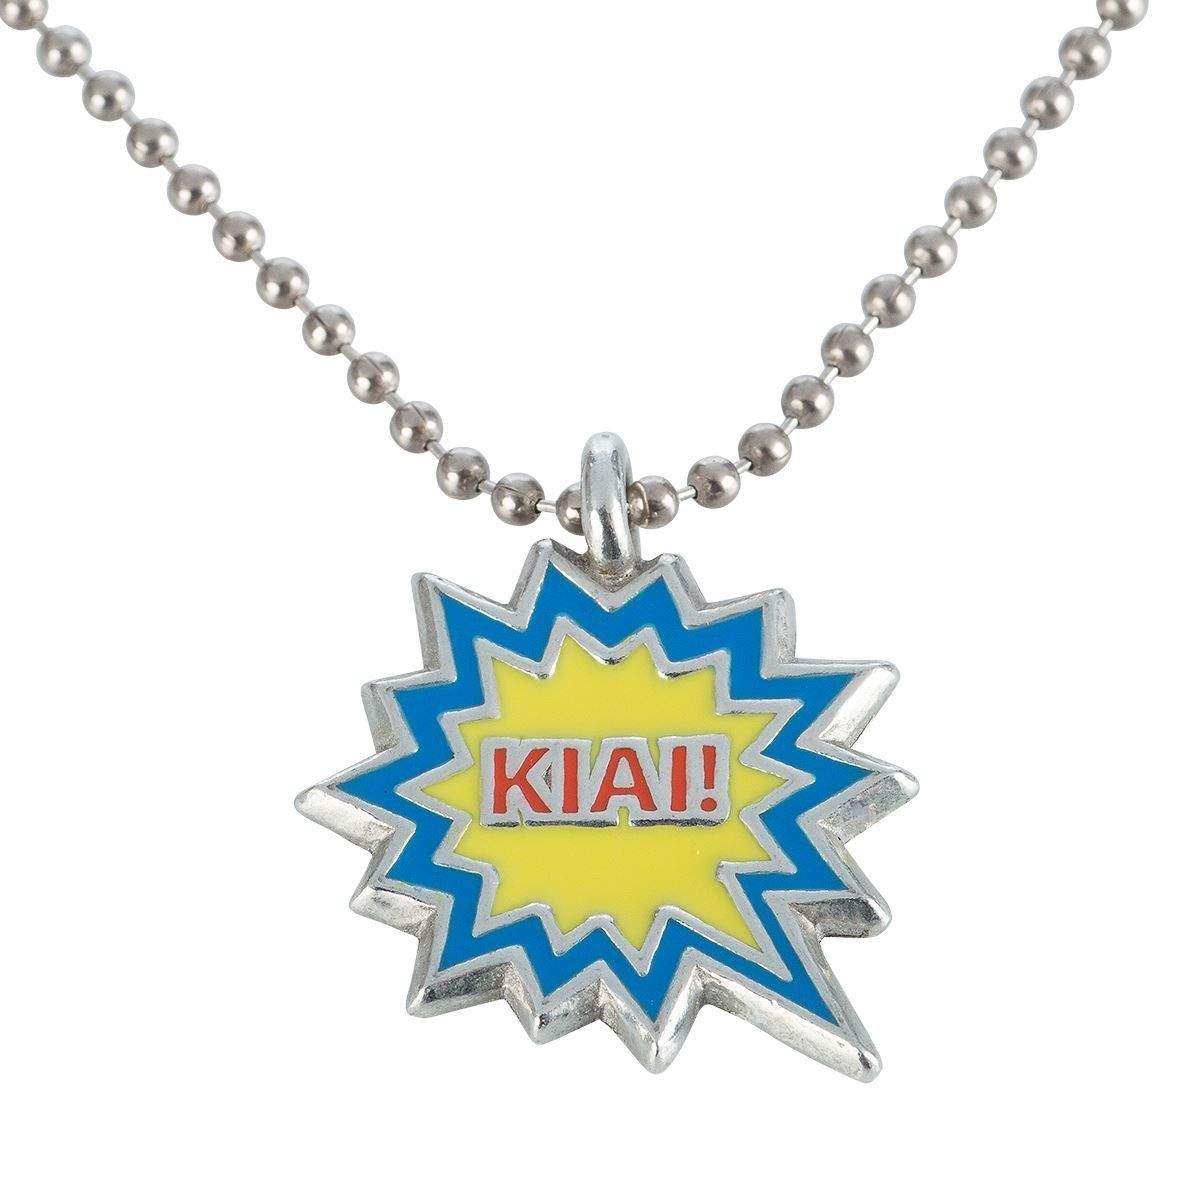 Kiai! Necklace